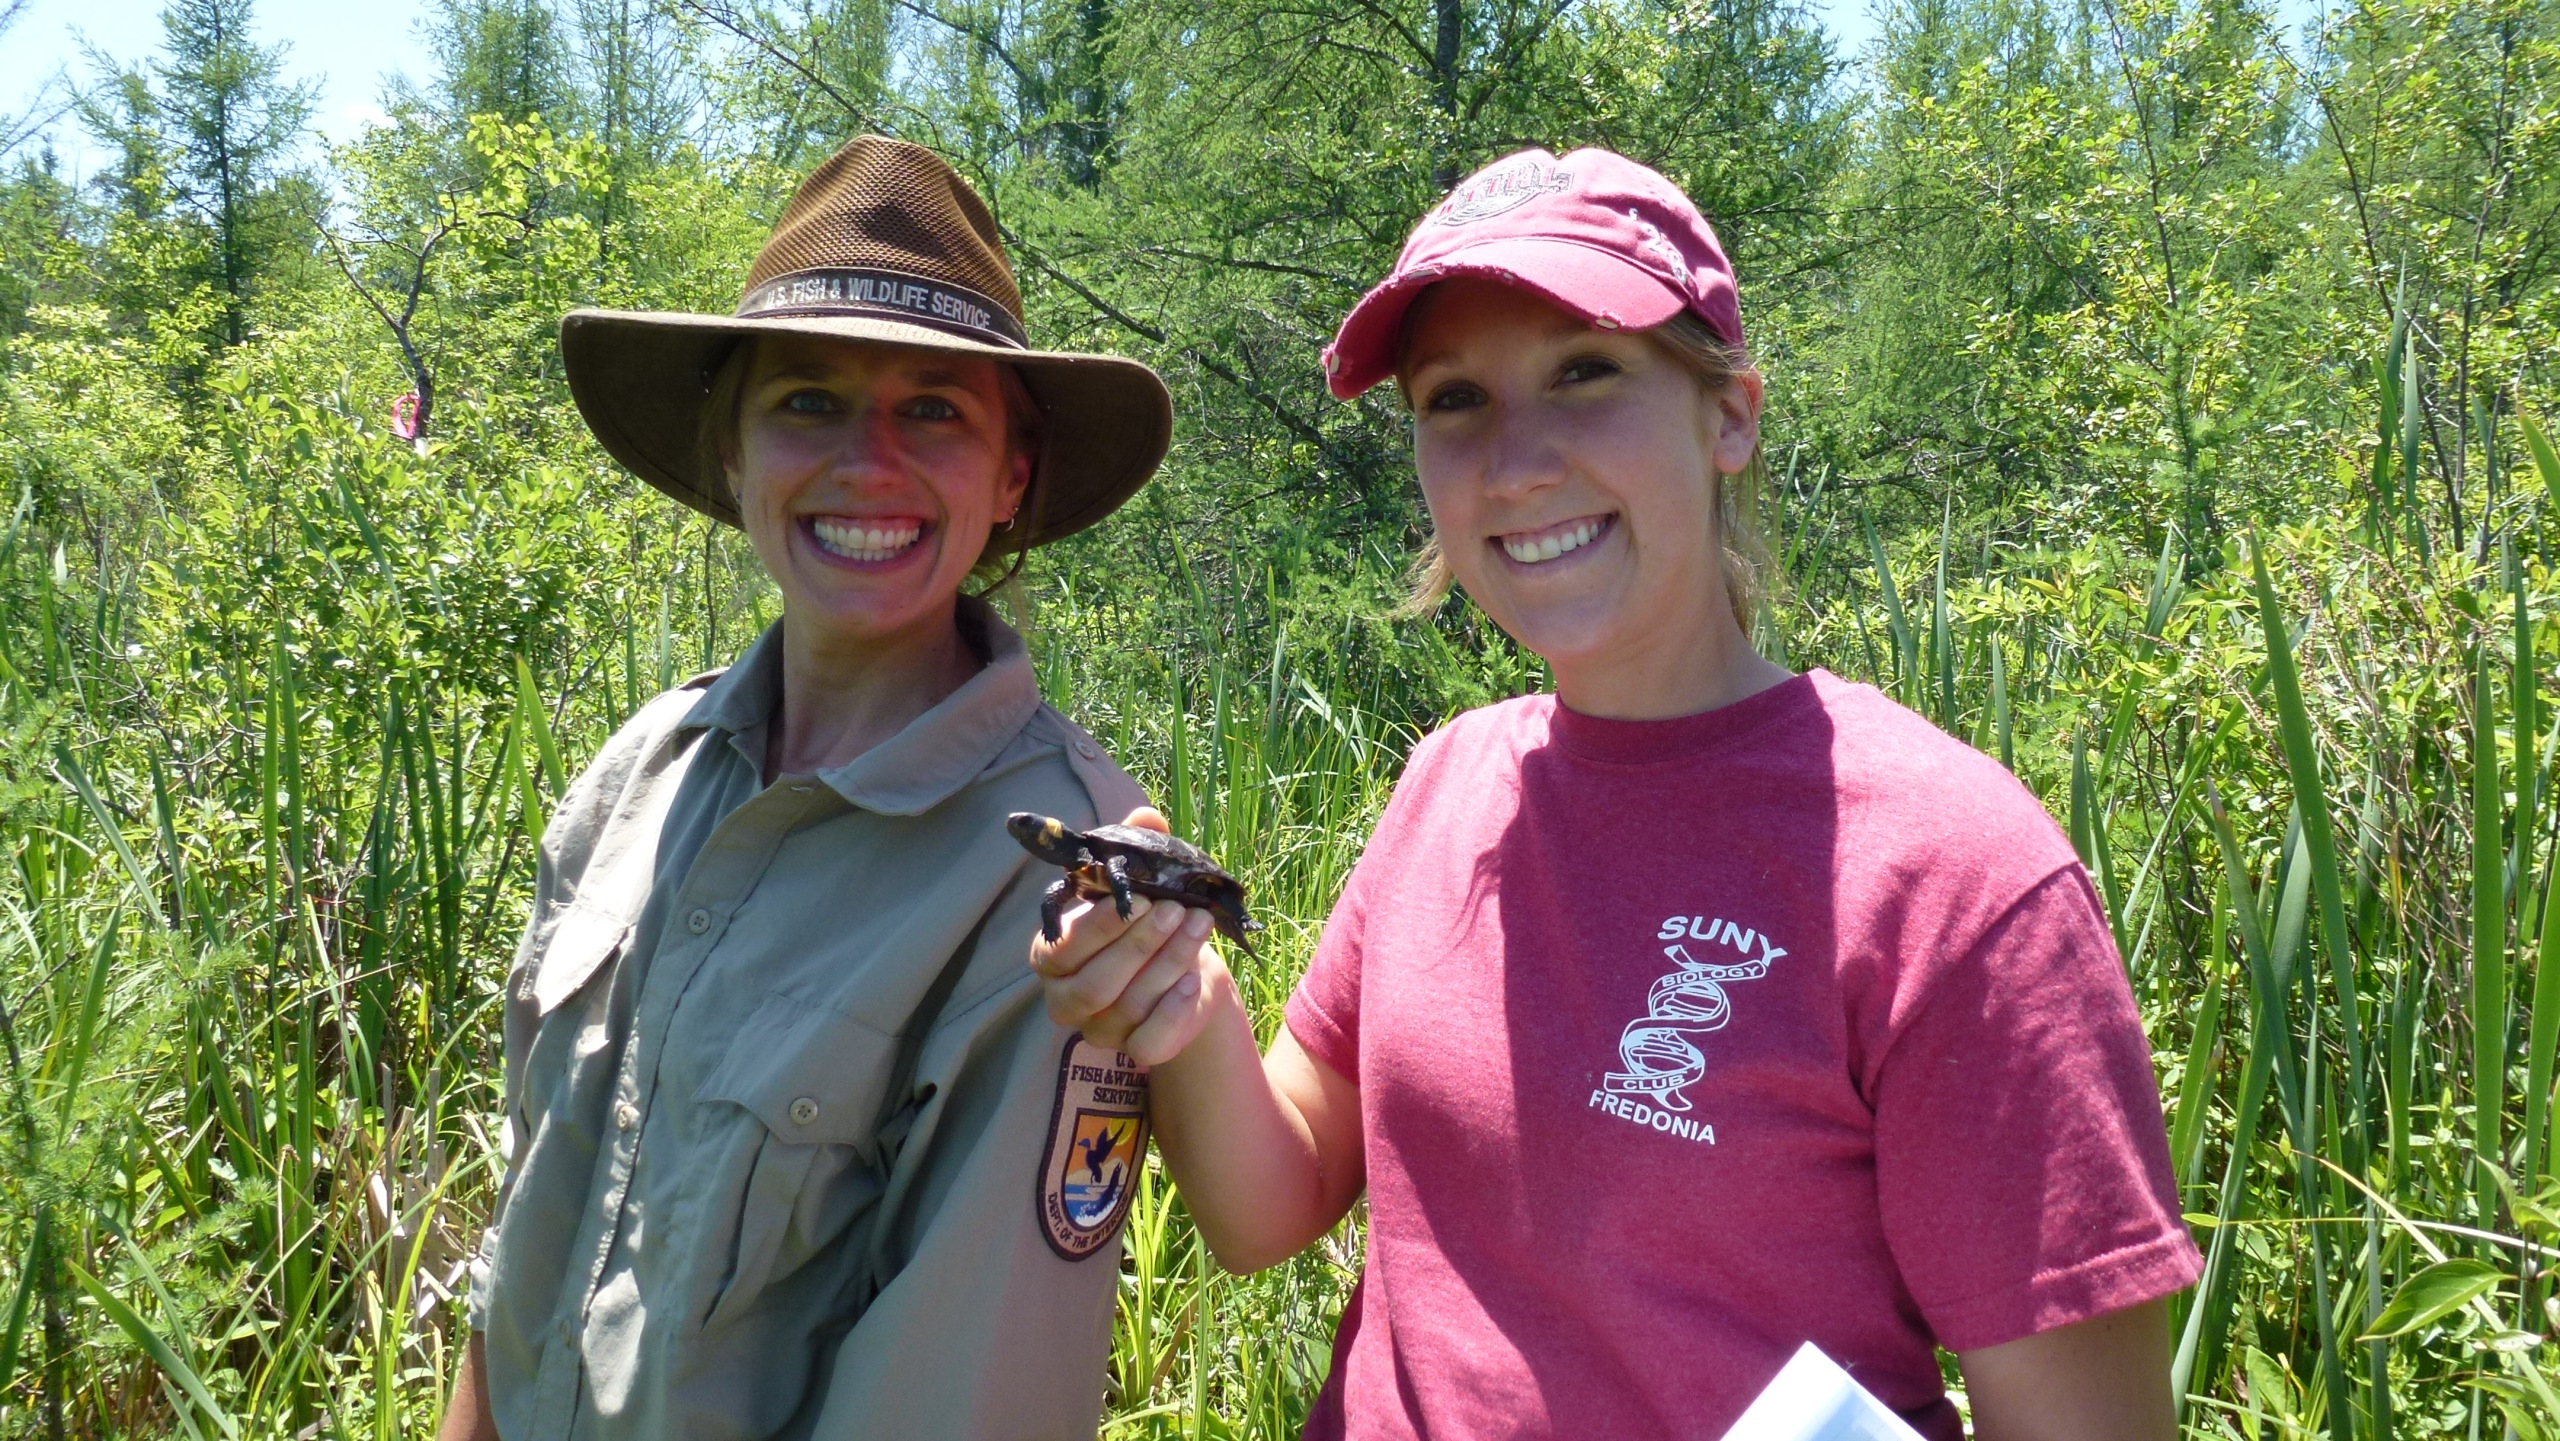 That's me on the right, standing with endangered species biologist Robyn Niver. Credit: USFWS